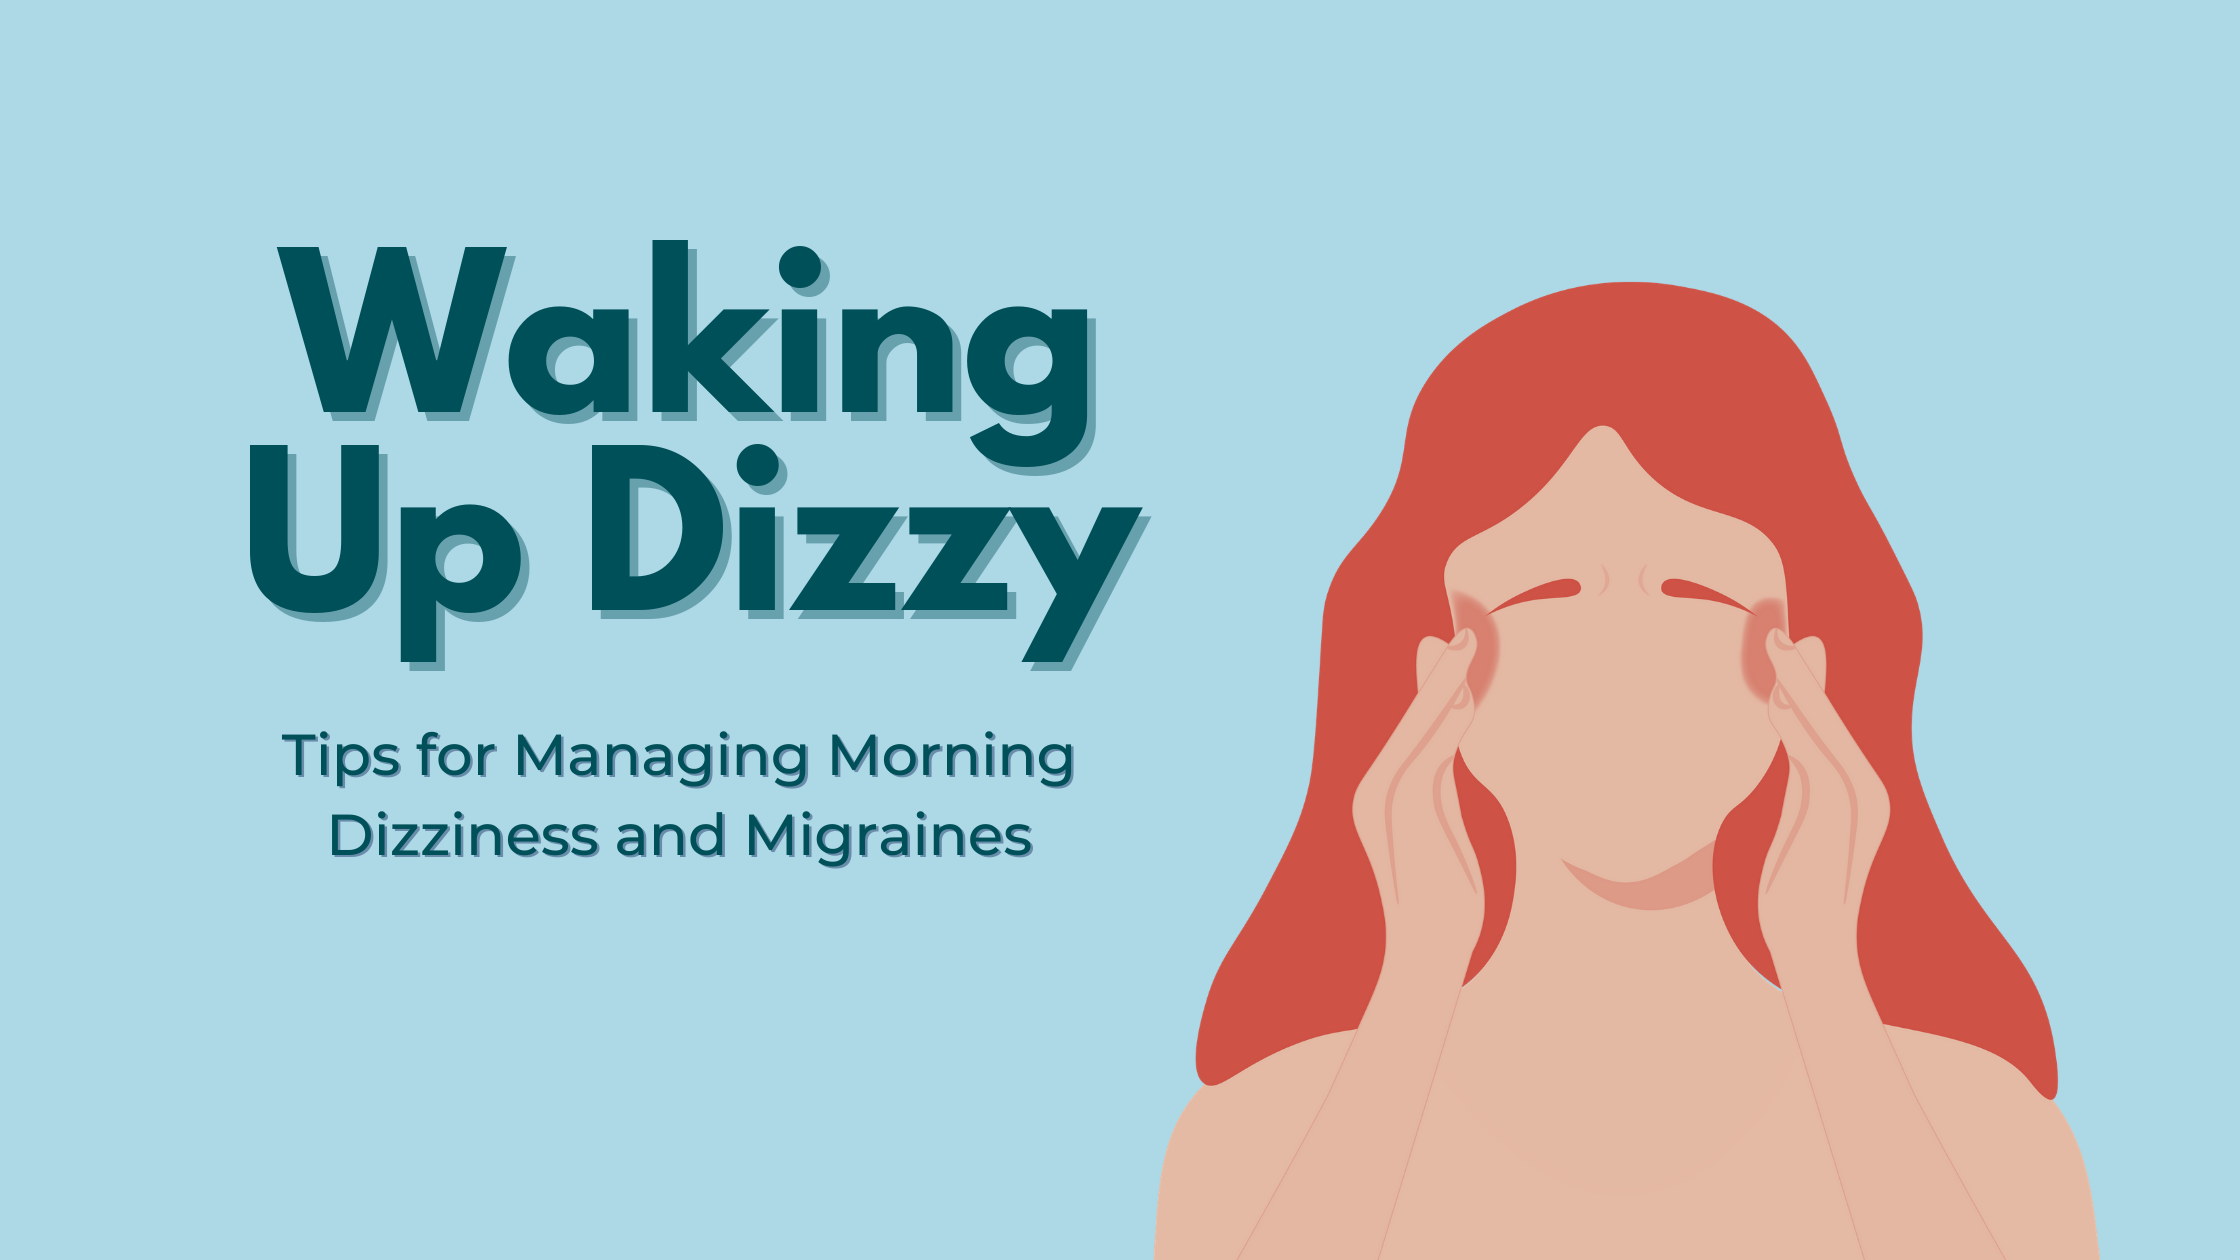 Waking Up Dizzy